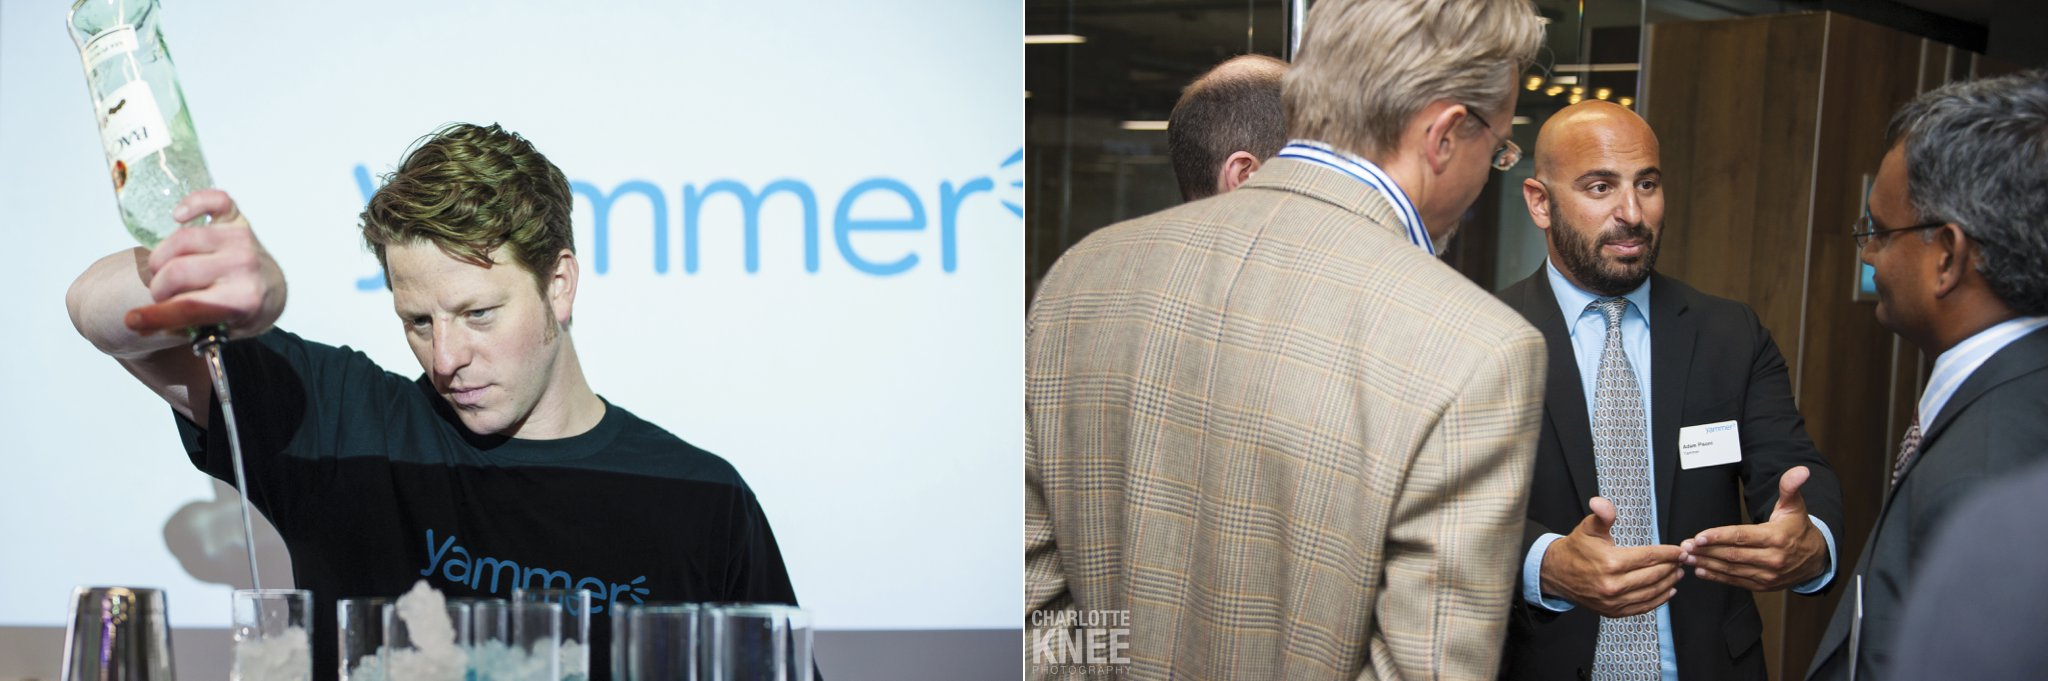 Event-Photography-Yammer-Microsoft-Charlotte-Knee-Photography_0007.jpg